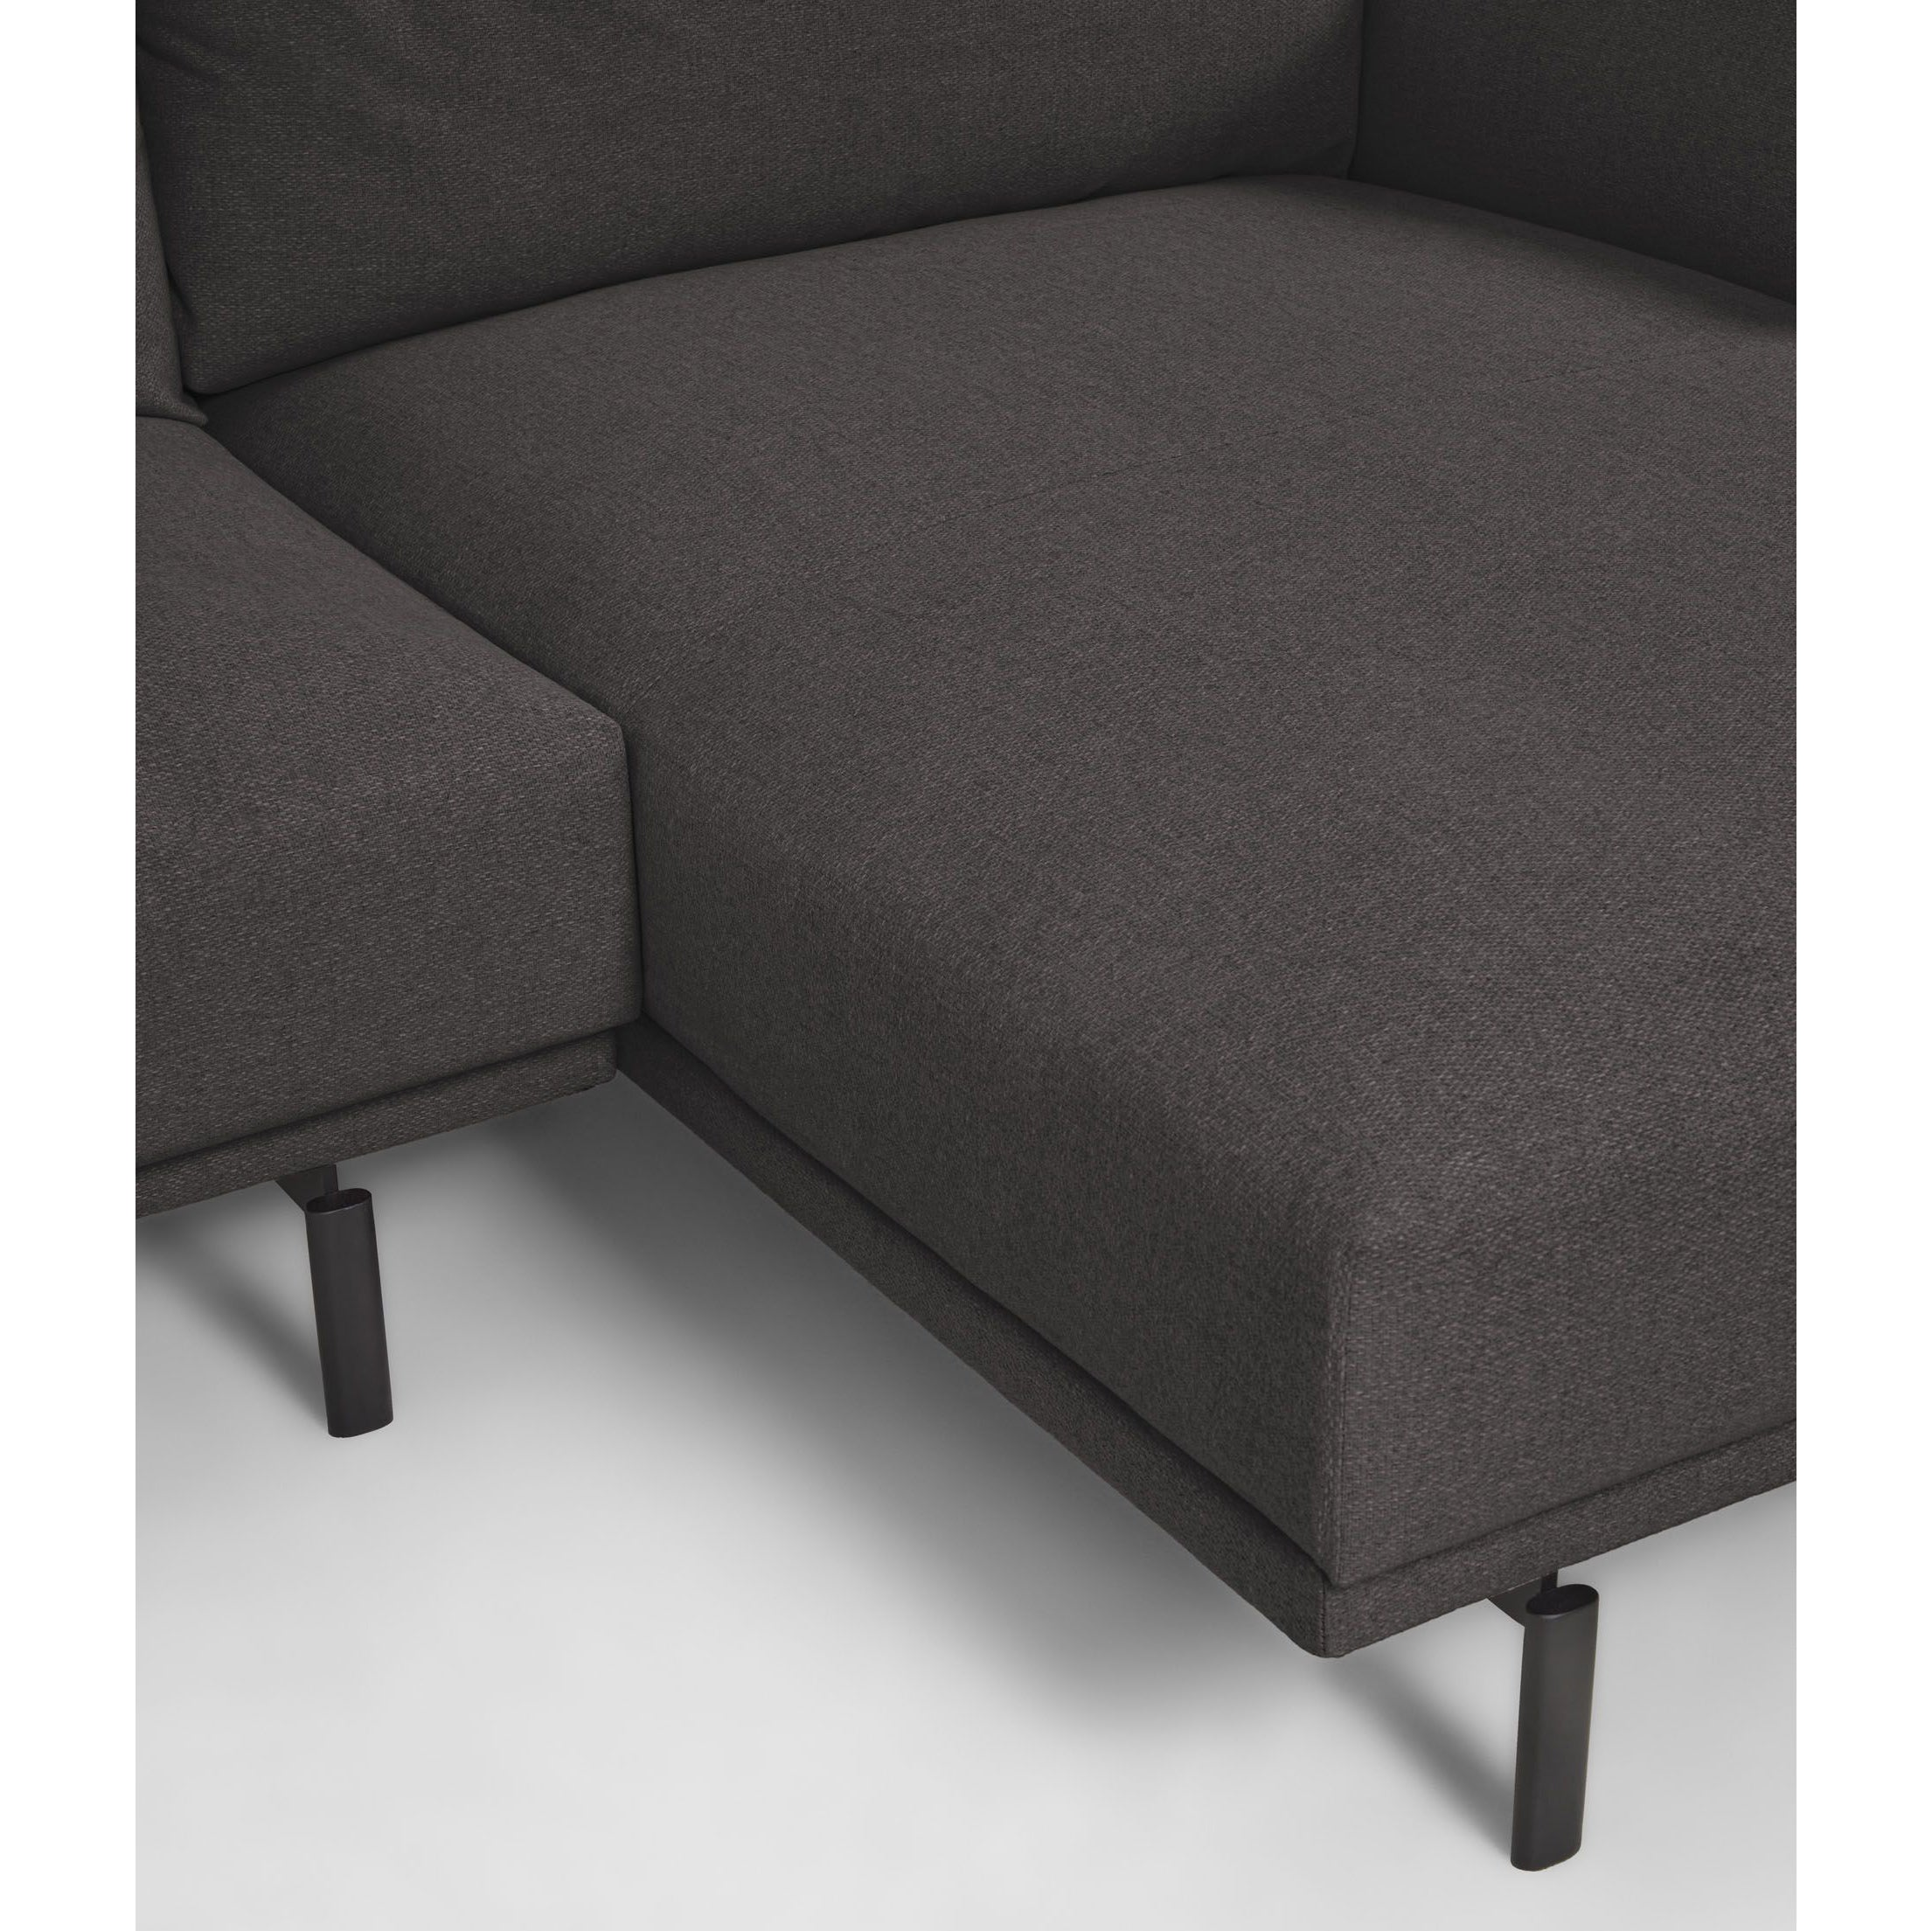 3 Persoonsbank Galene met chaise longue rechts